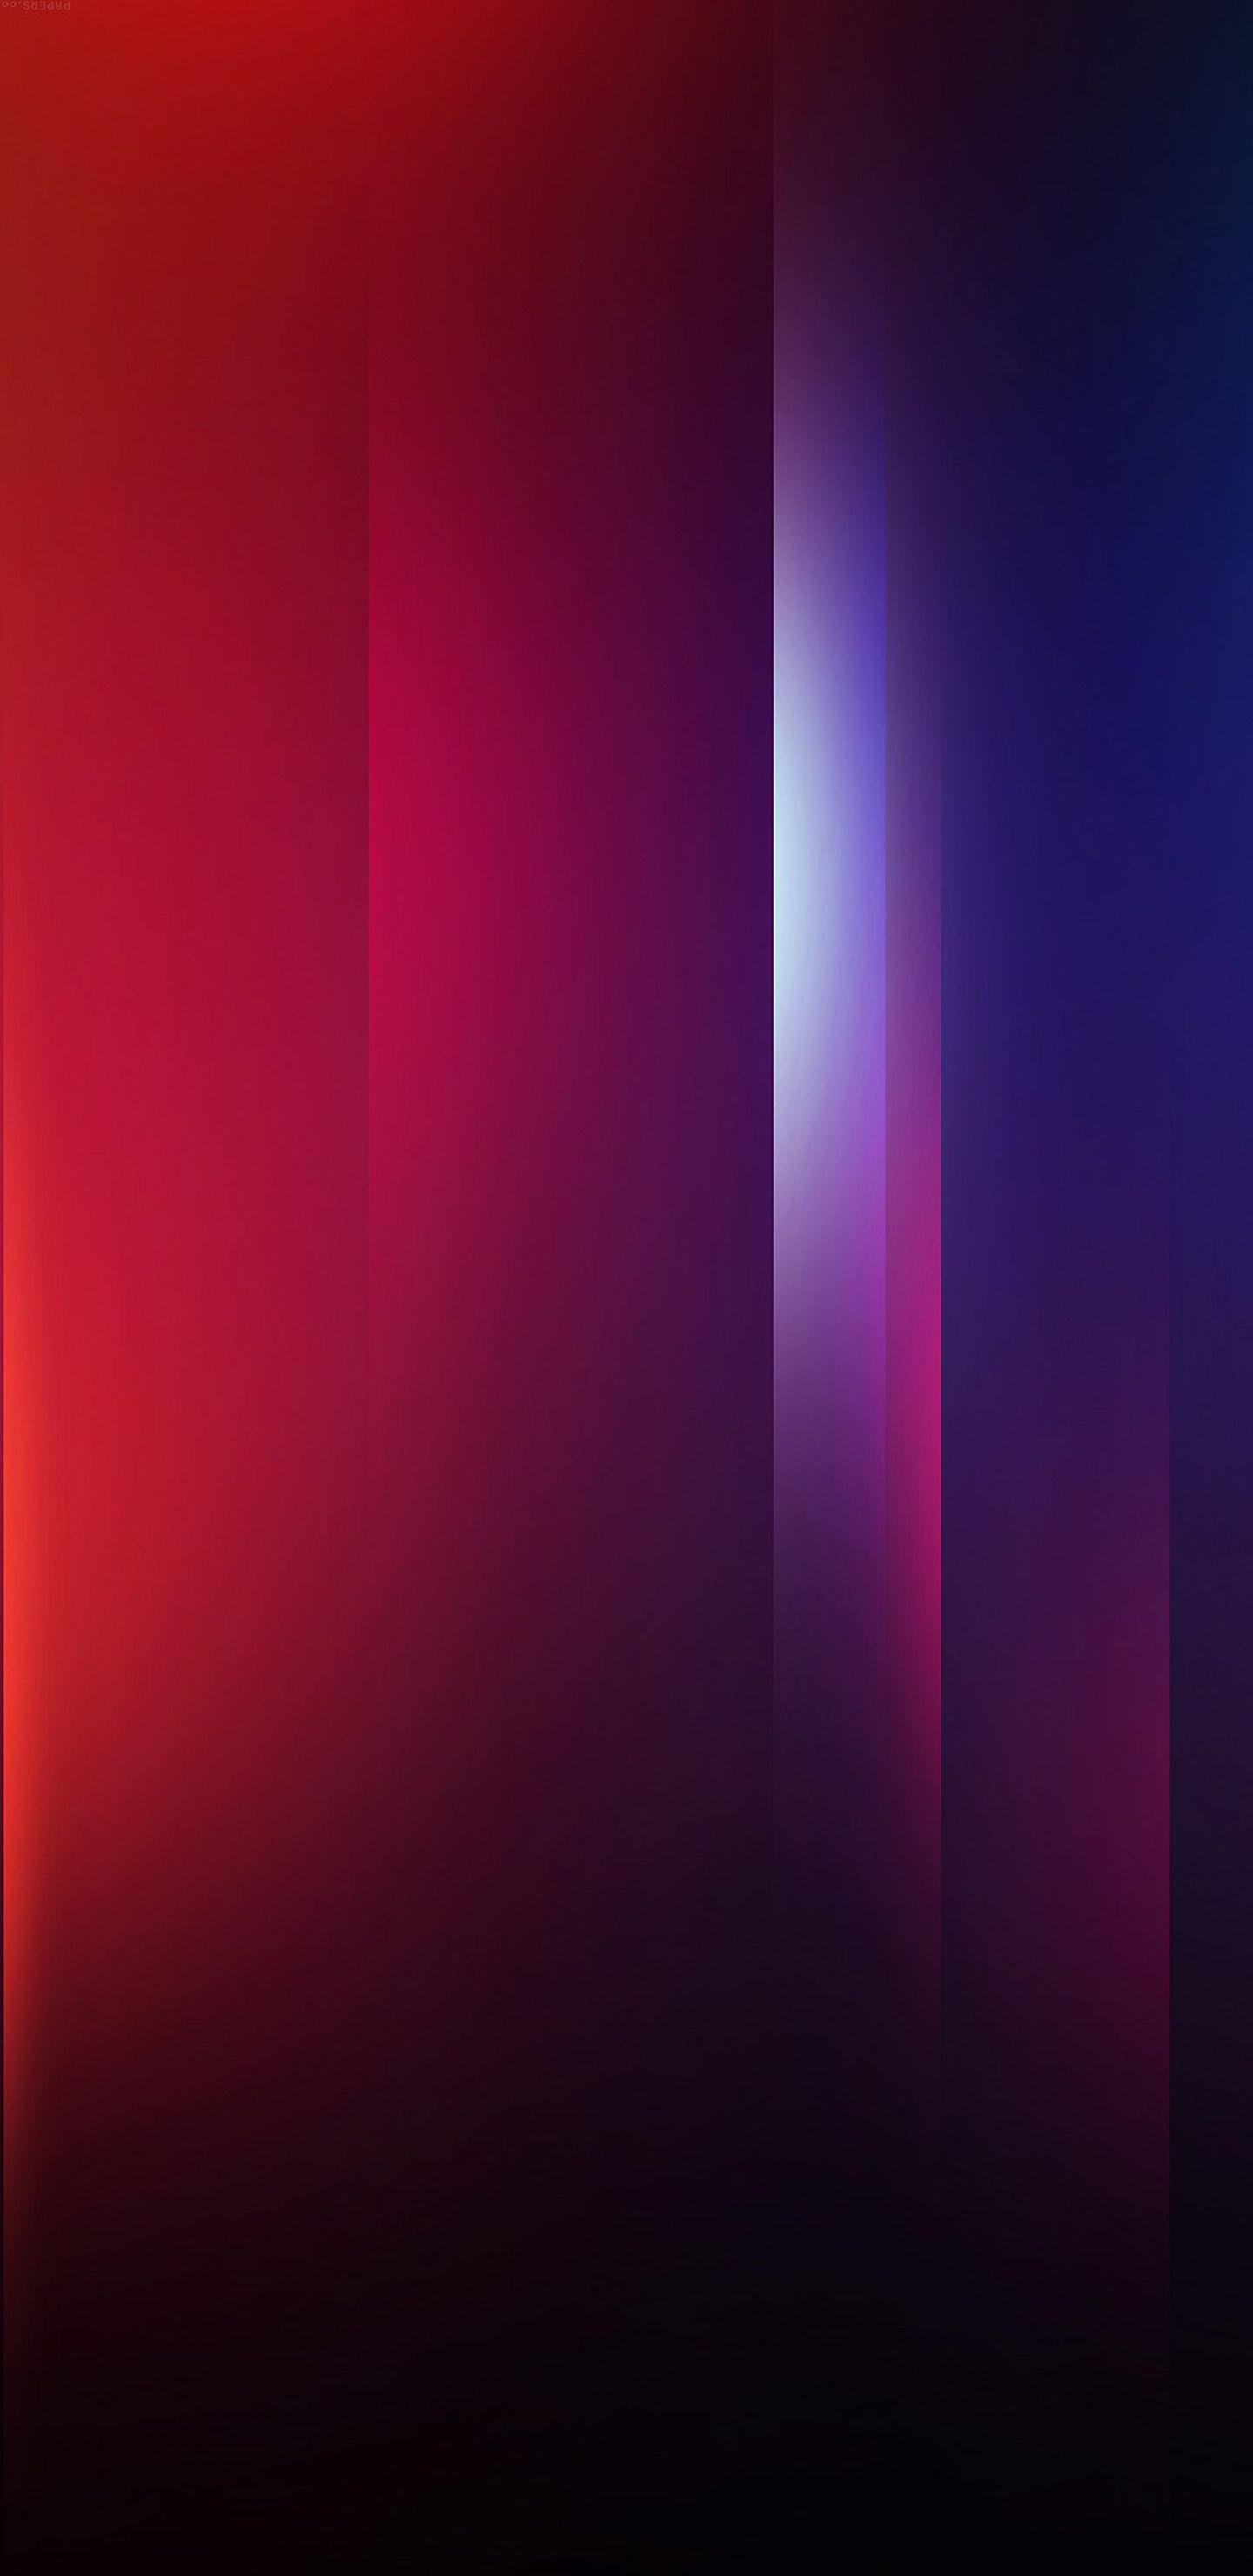 1440x2960 Free download Blue red purple minimal abstract wallpaper ...